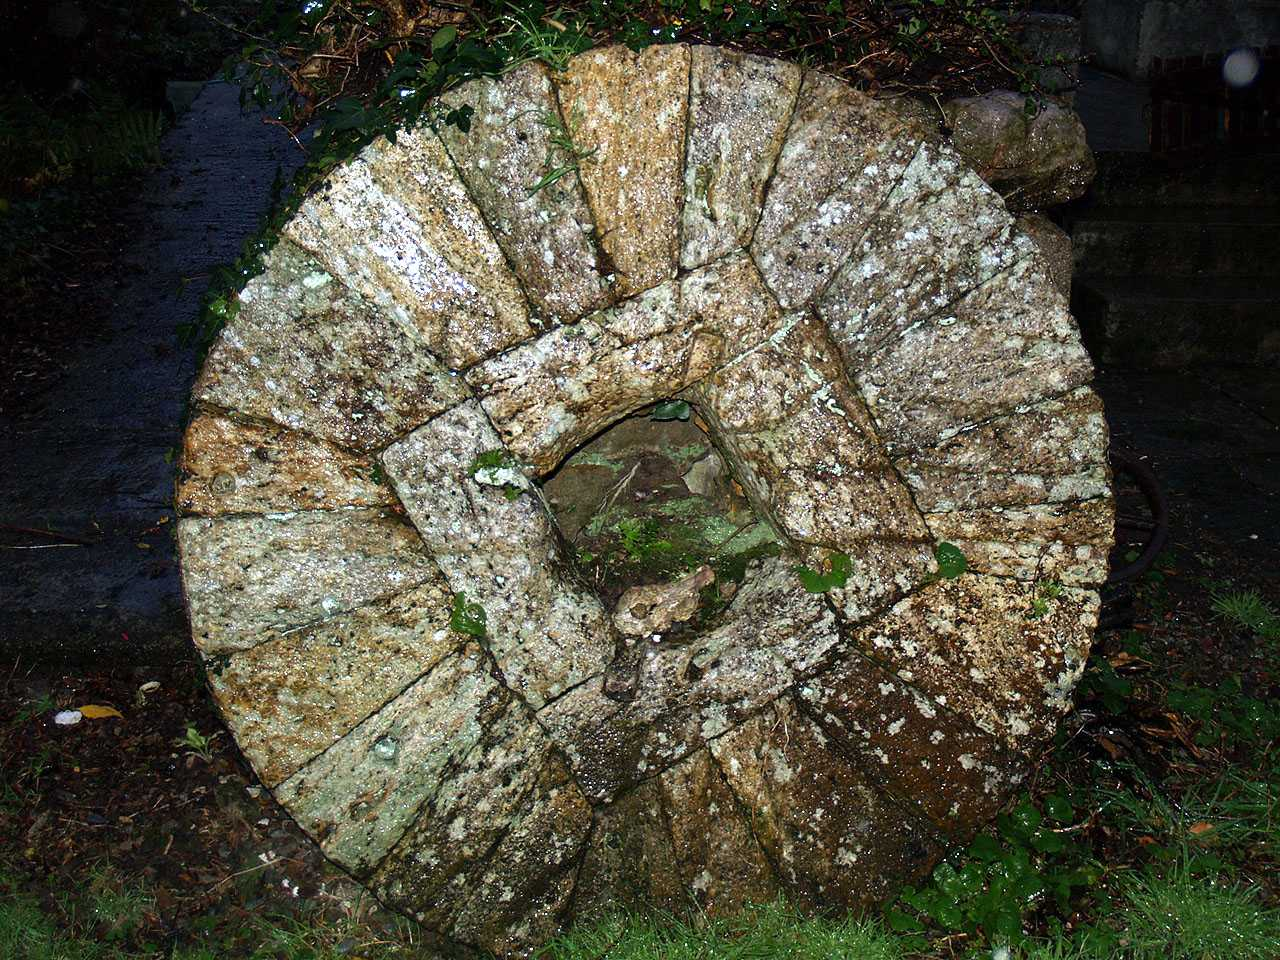 Anglesey, Bodffordd, Frogwy Water Mill - Millstone